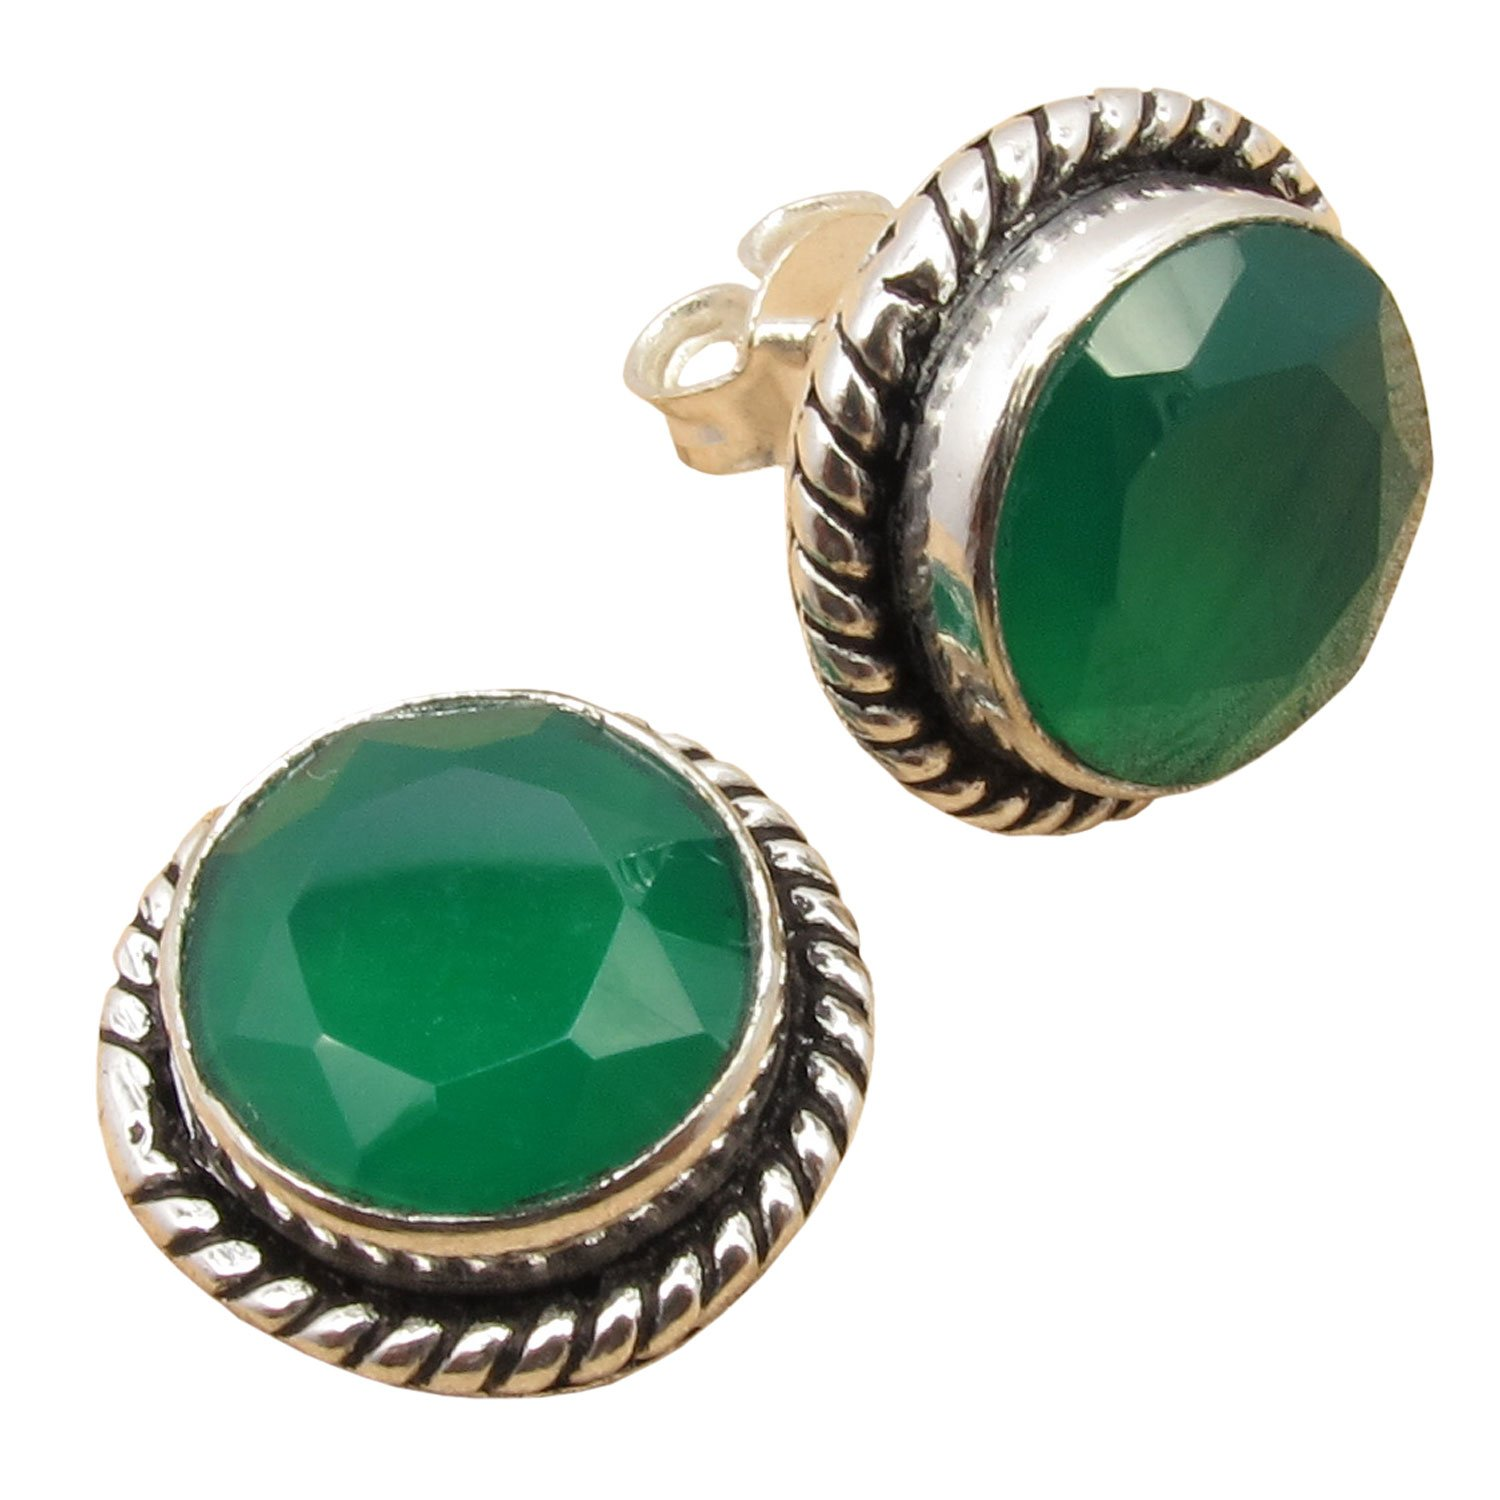 925 Silver Plated! Genuine GREEN ONYX Handcrafted Studs Earrings 5/8 inches Diameter! Fine Jewelry